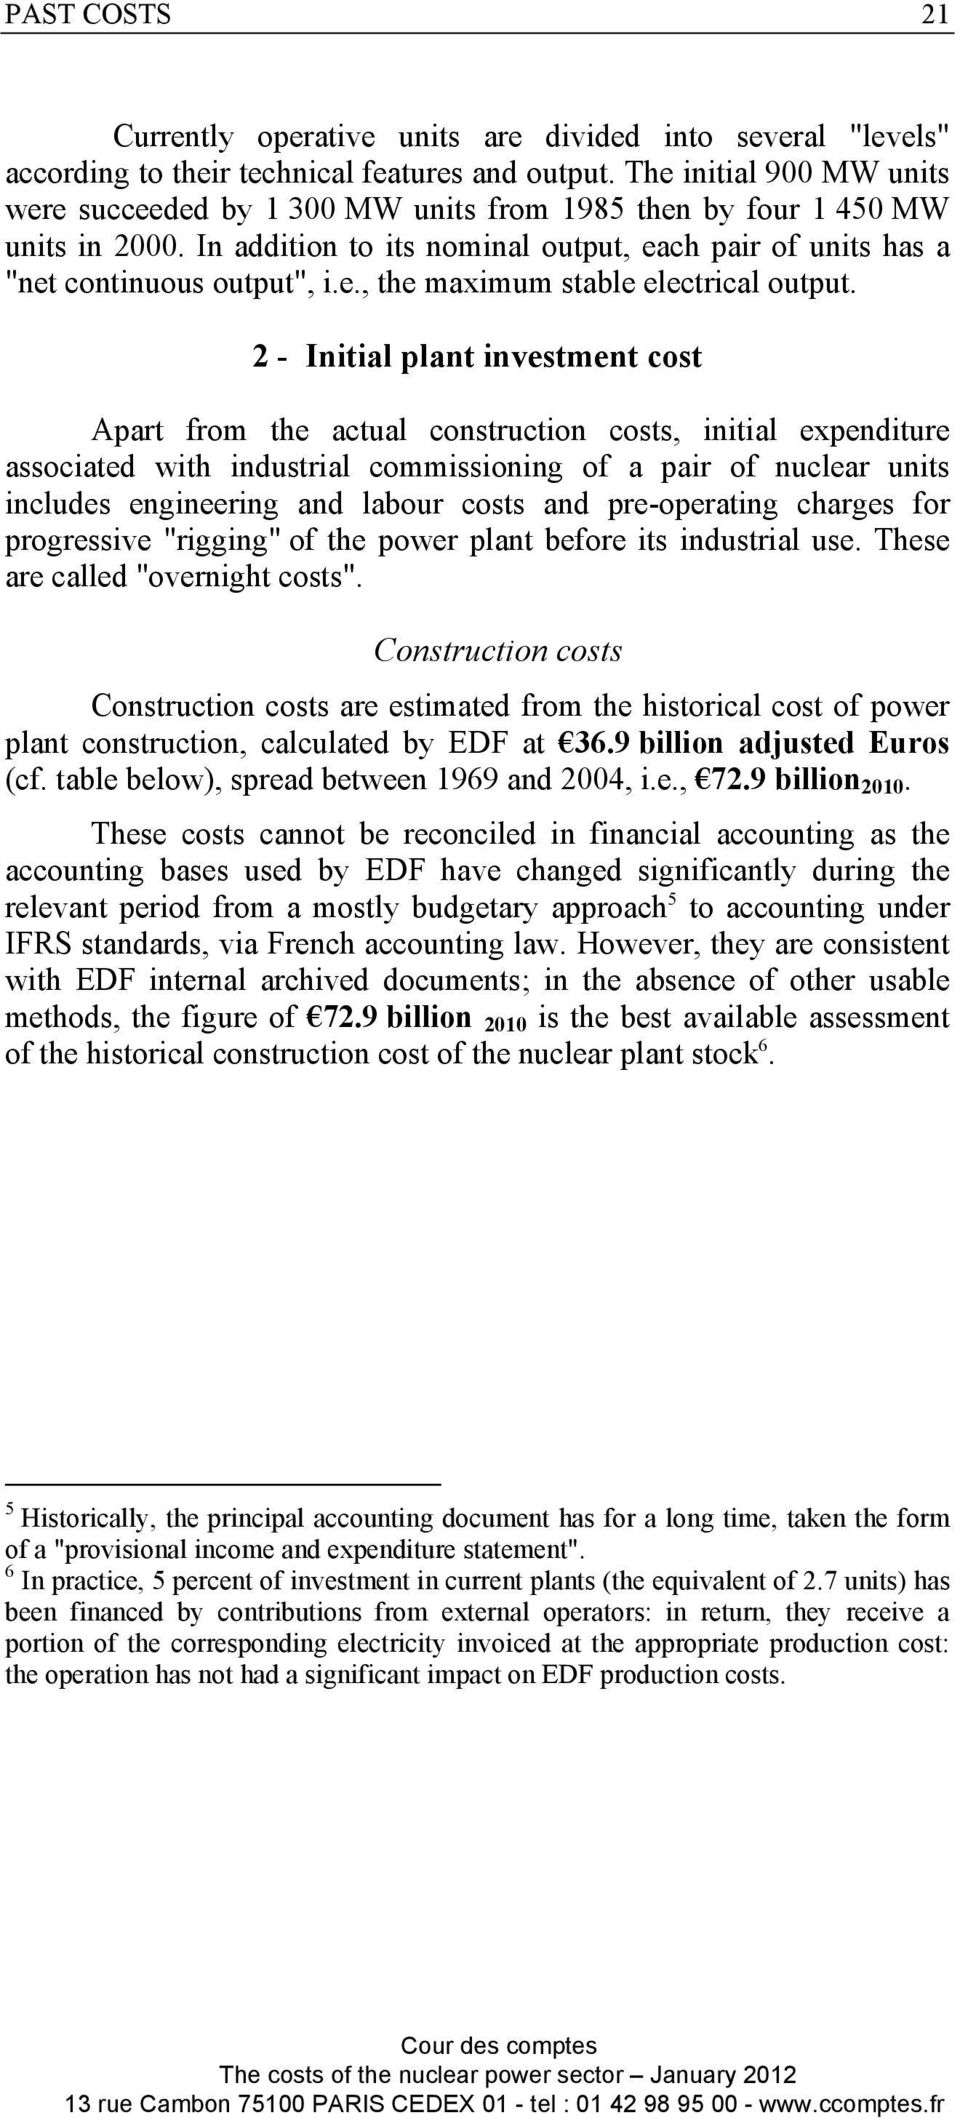 2 - Initial plant investment cost Apart from the actual construction costs, initial expenditure associated with industrial commissioning of a pair of nuclear units includes engineering and labour